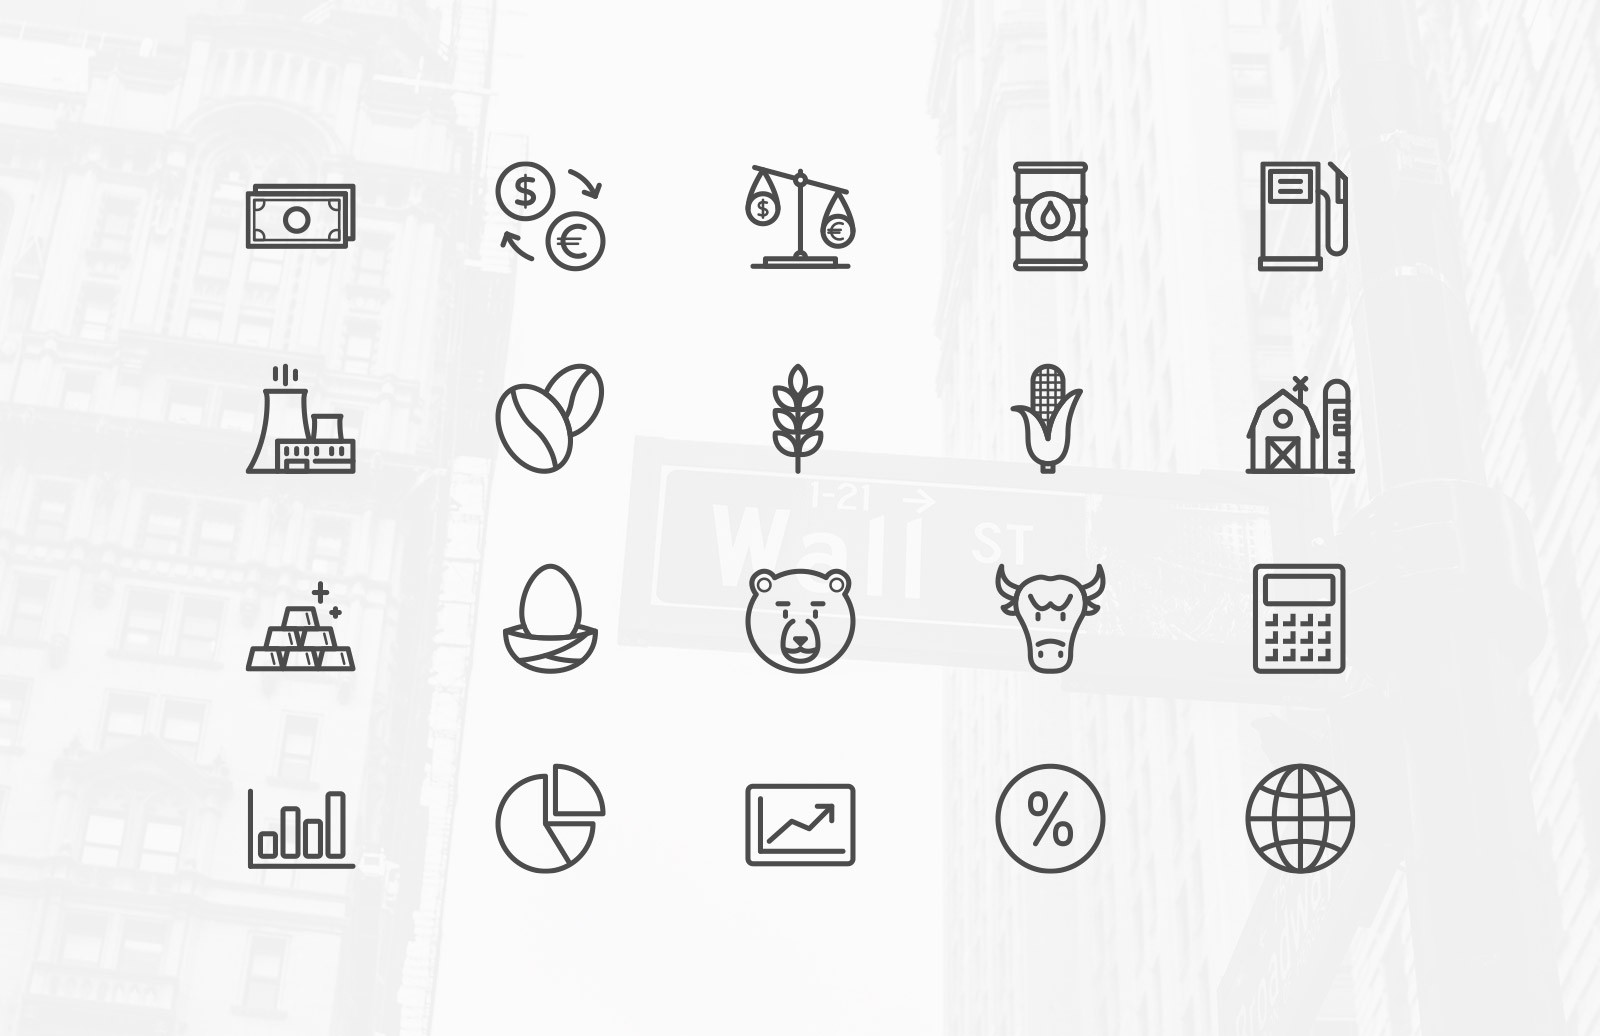 Stock  Market  Vector  Icons  Preview 2A